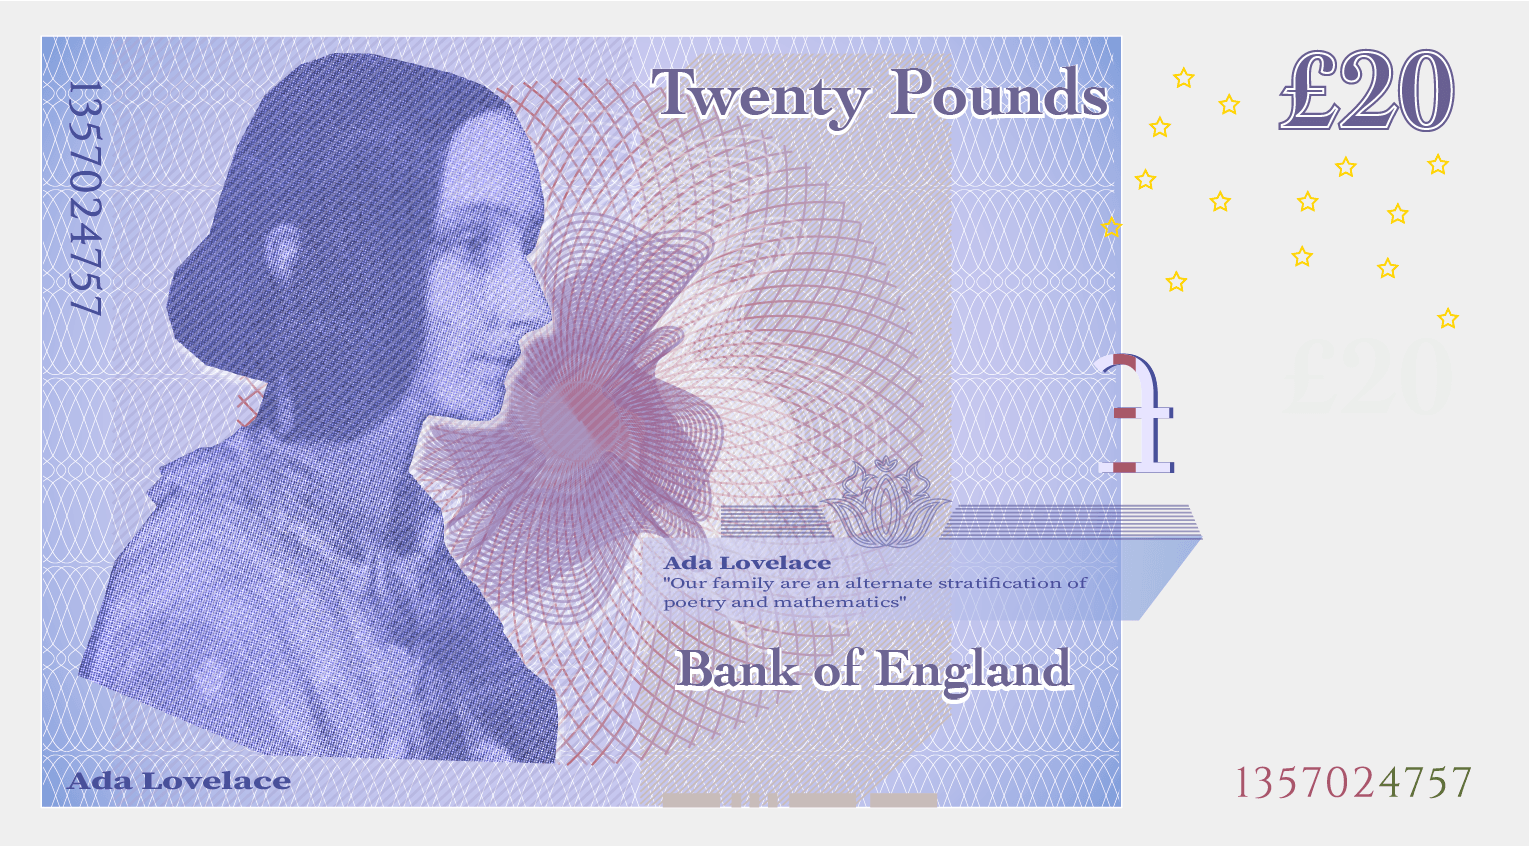 What your bank notes would look like if women were the face of them